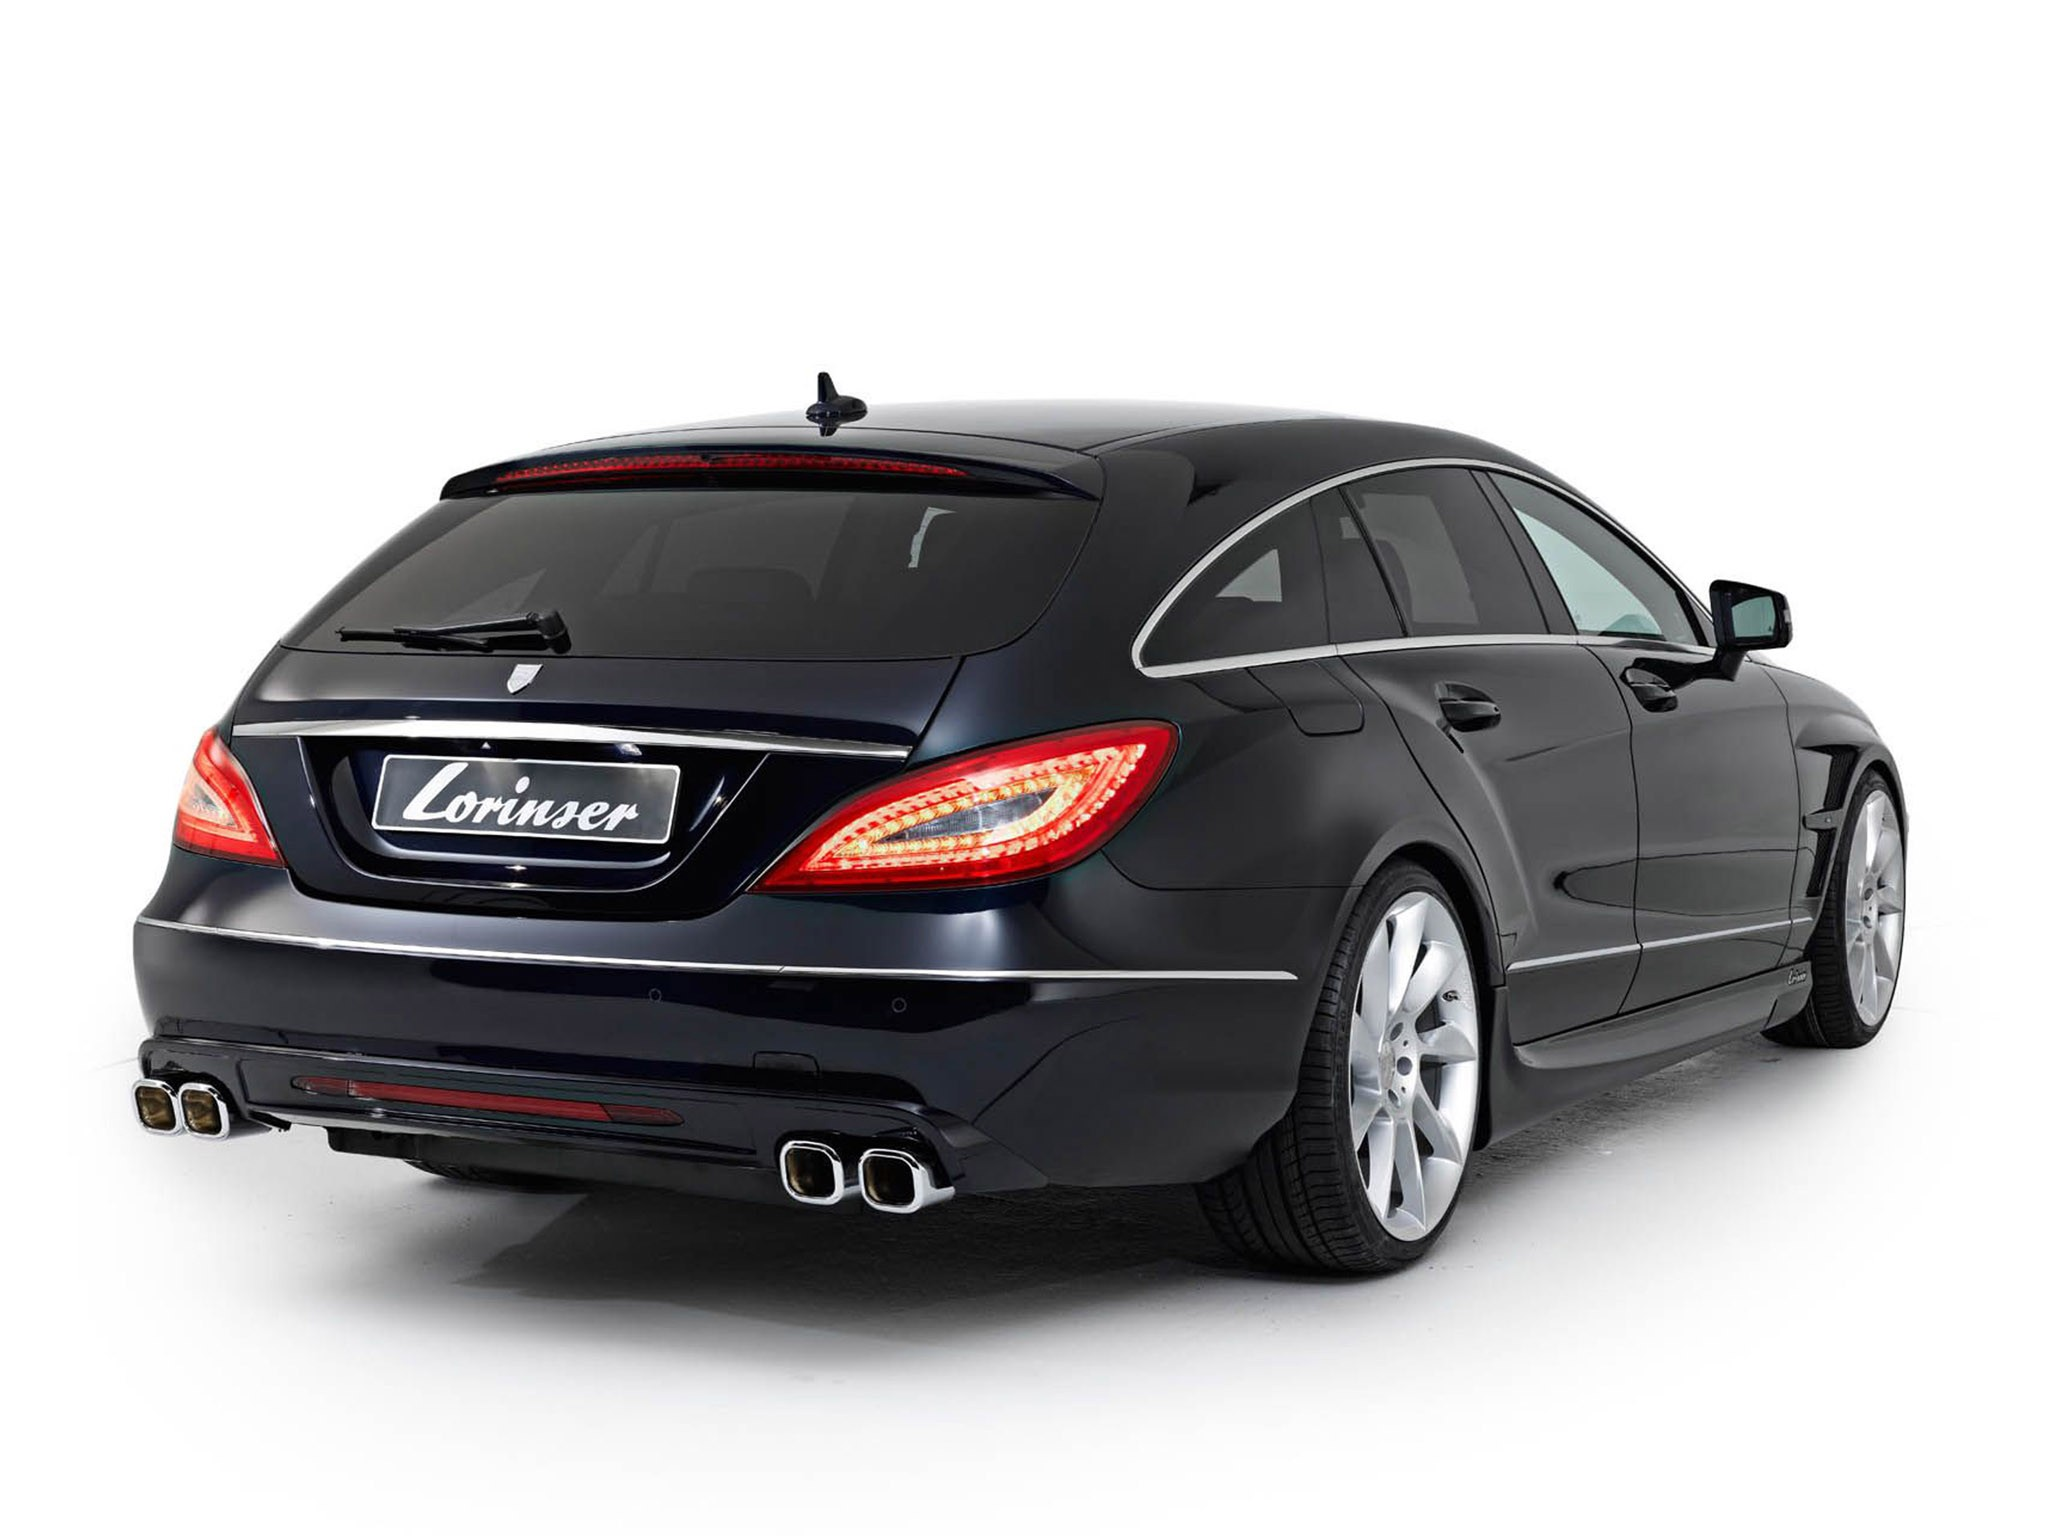 2013 Lorinser Mercedes CLS Shooting Brake